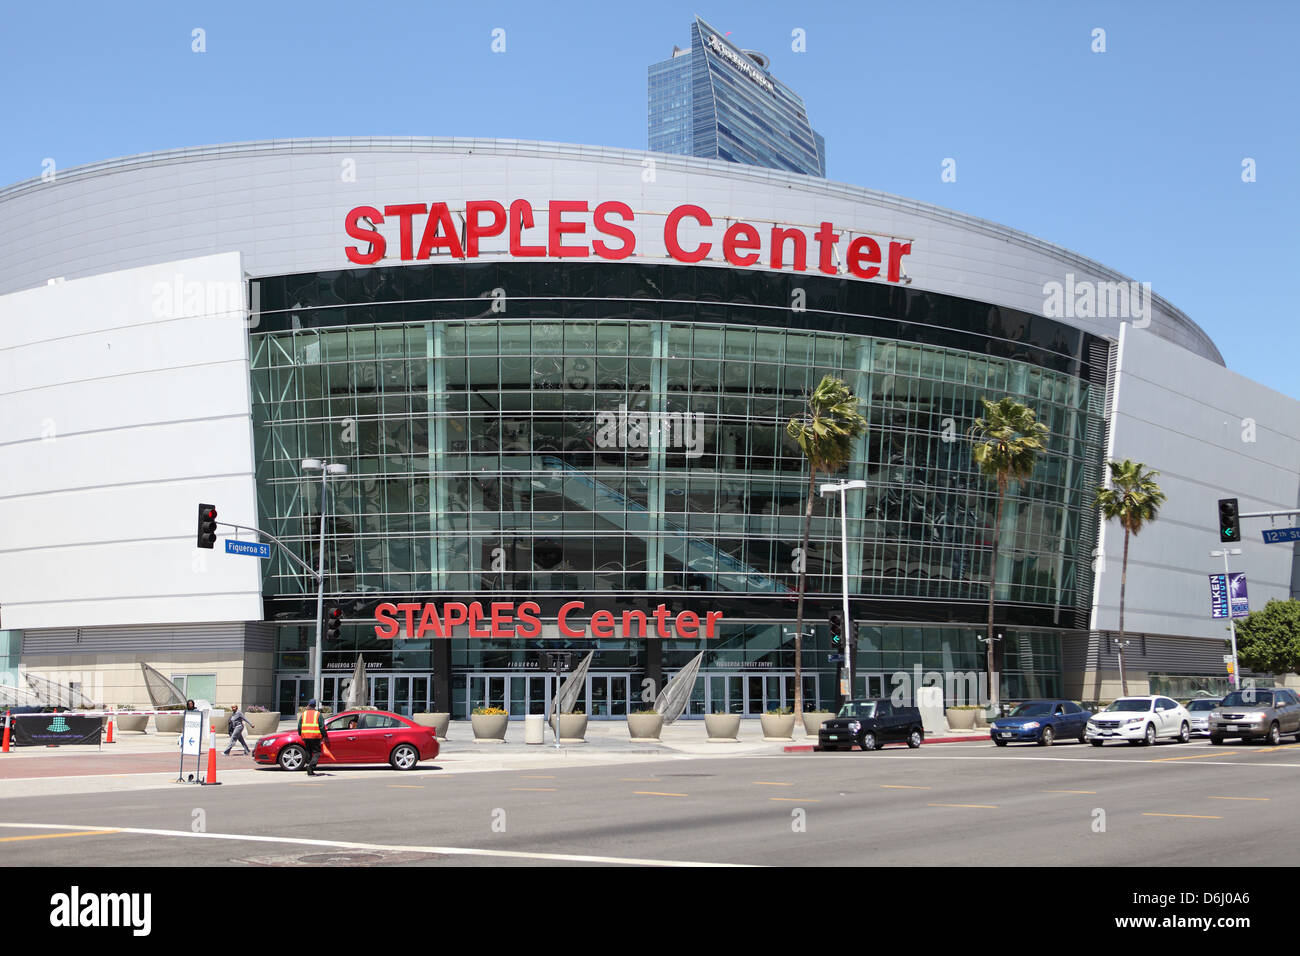 LOS ANGELES, CALIFORNIA, USA - April 16, 2013 - The Staples Center in Downtown Los Angeles on April 16, 2013. - Stock Image